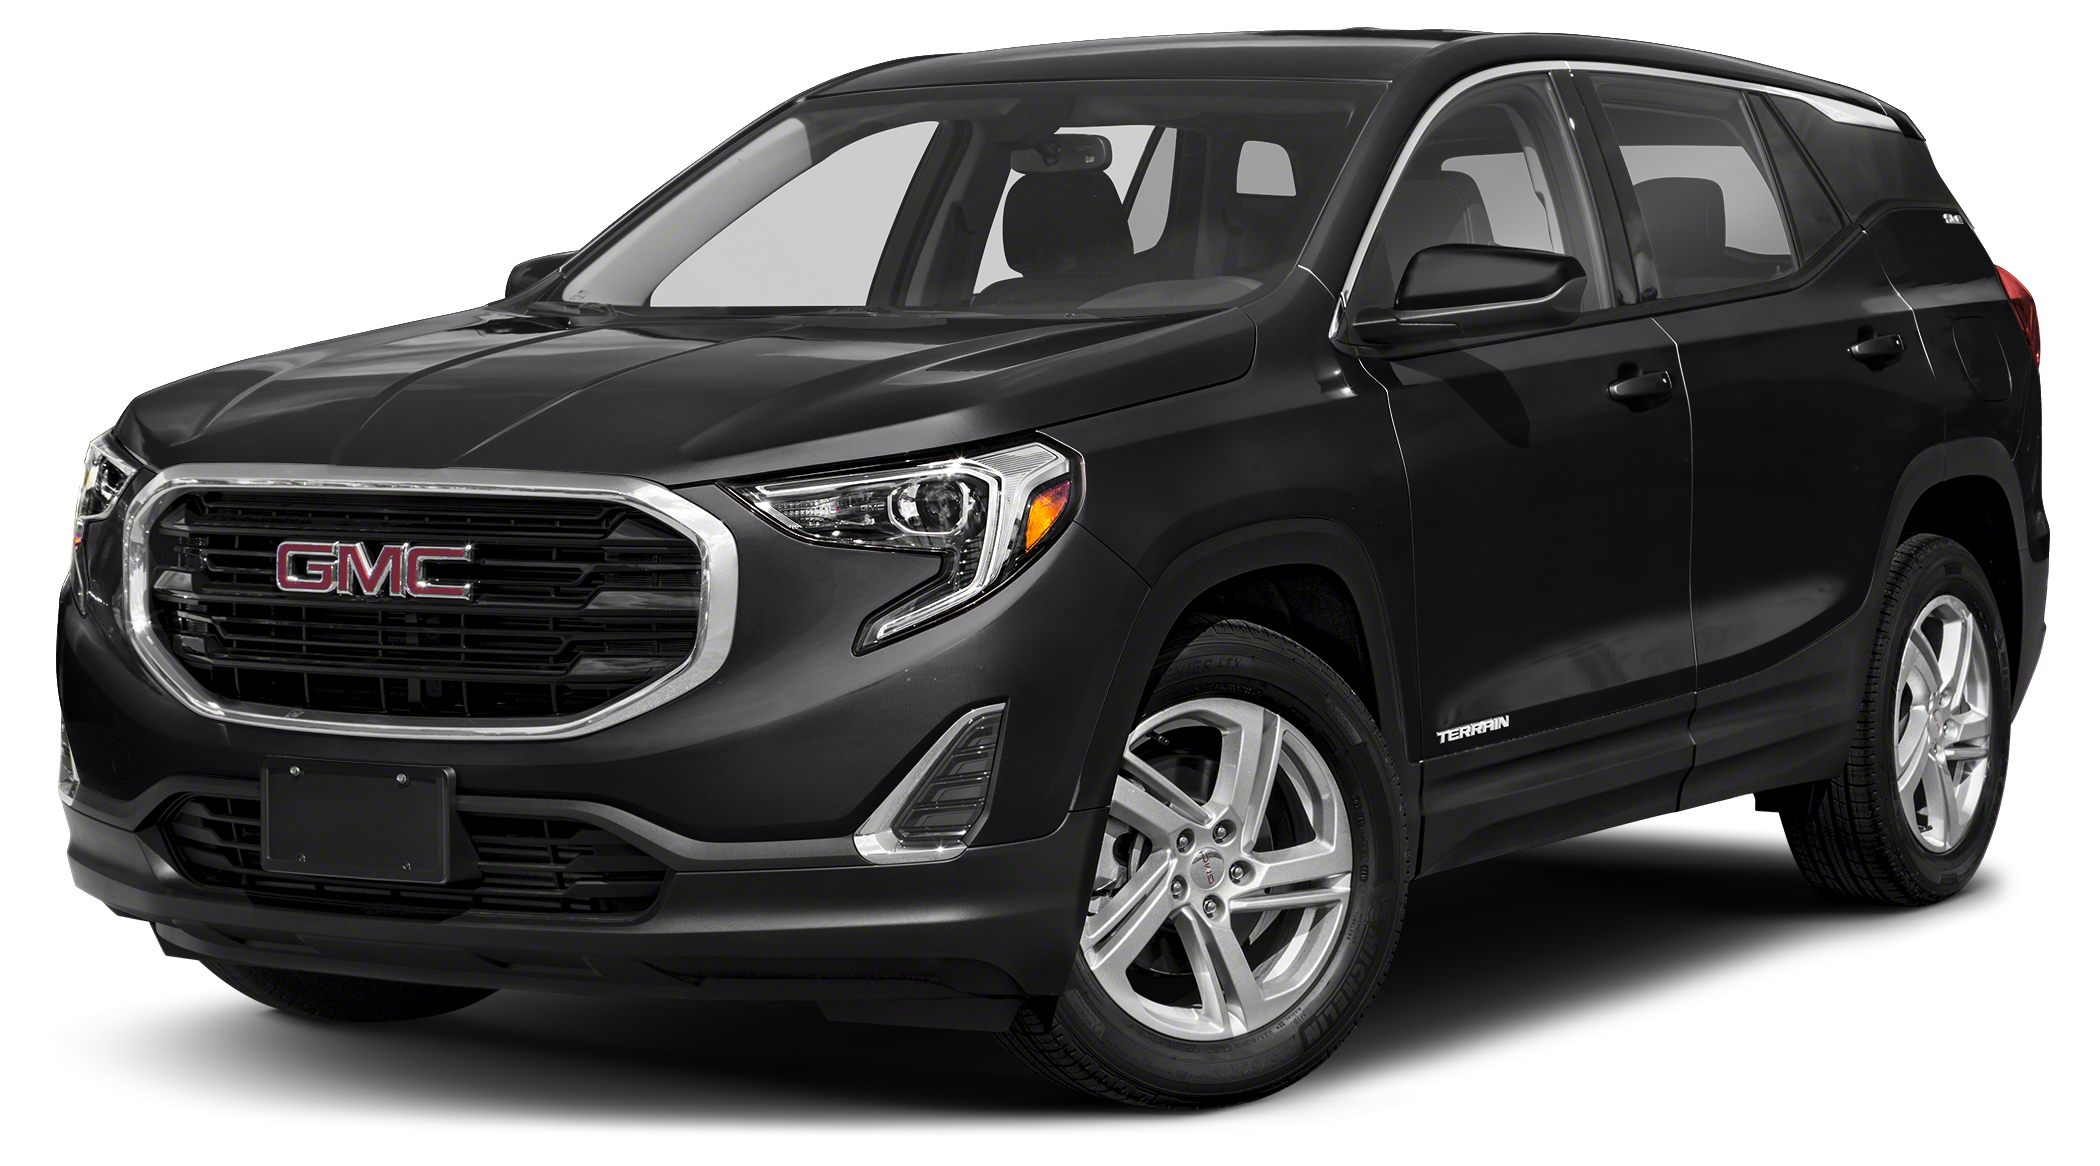 2018 GMC Terrain SLE Youll love the look and feel of this 2018 GMC Terrain SLE which features a